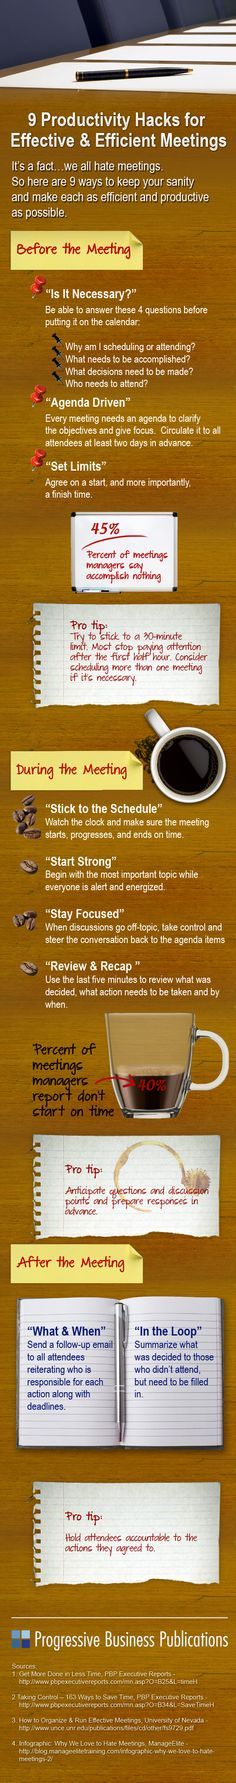 #INFOGRAPHIC: Why #meetings stink — and how to make 'em better. Efficient & Effective Meetings Infographic from Progressive Business Publications